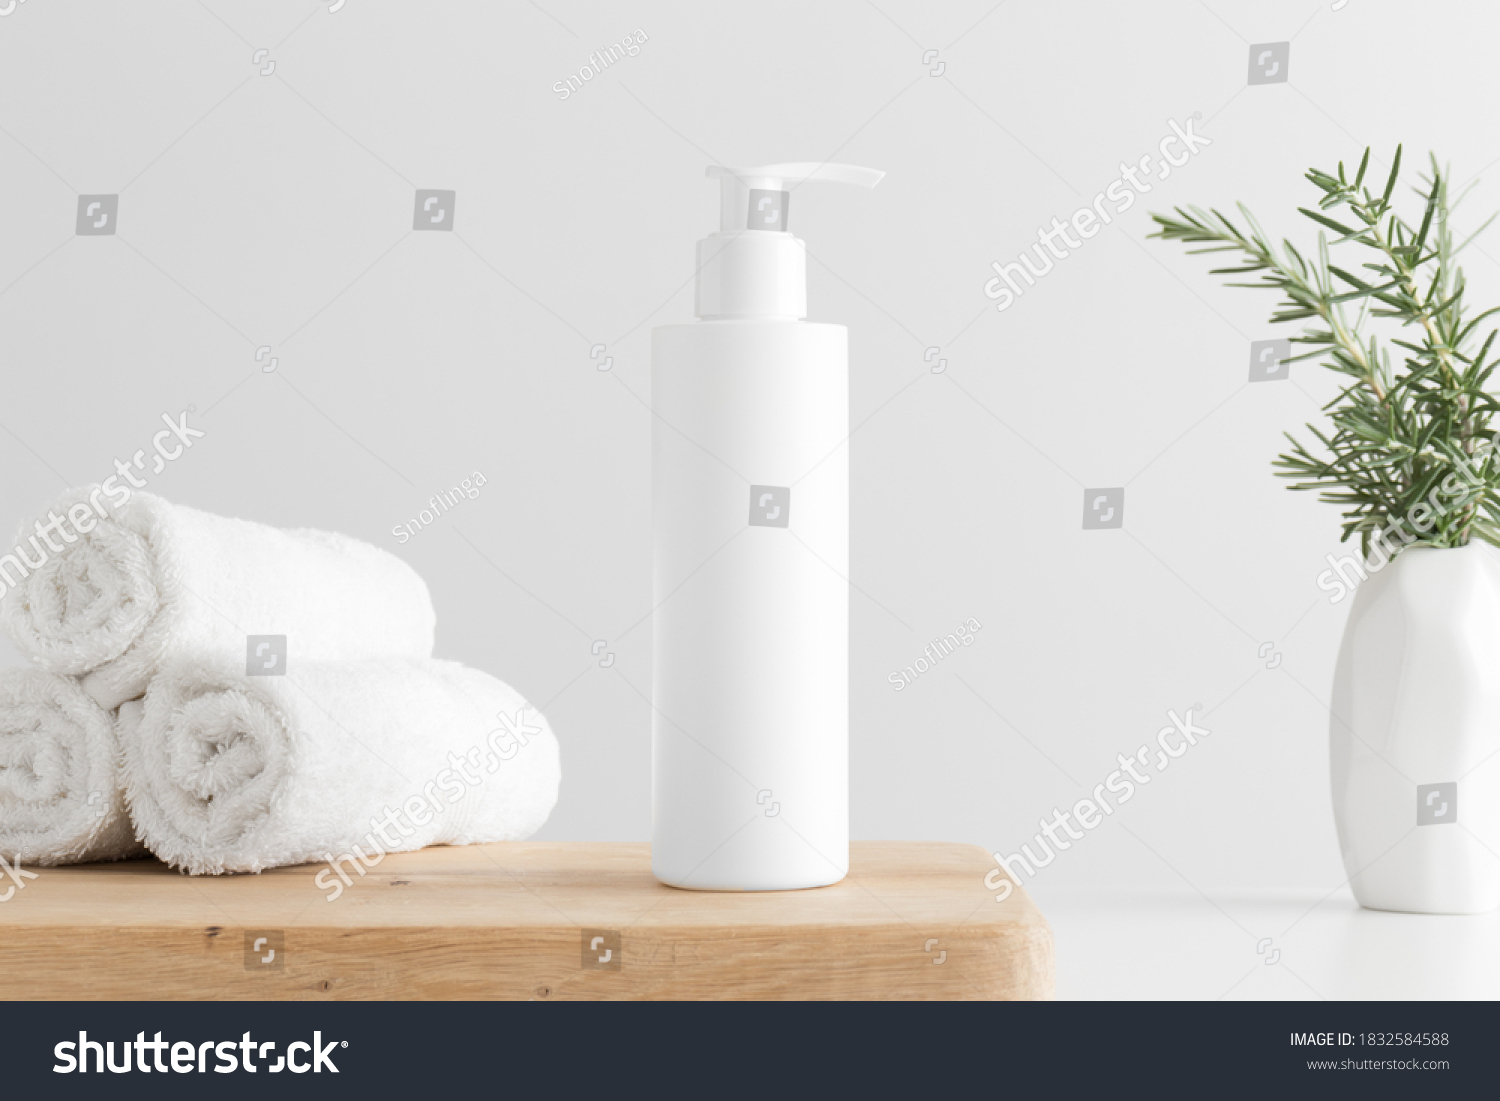 White cosmetic shampoo dispenser bottle mockup with towels and a rosemary  on a wooden table. #1832584588